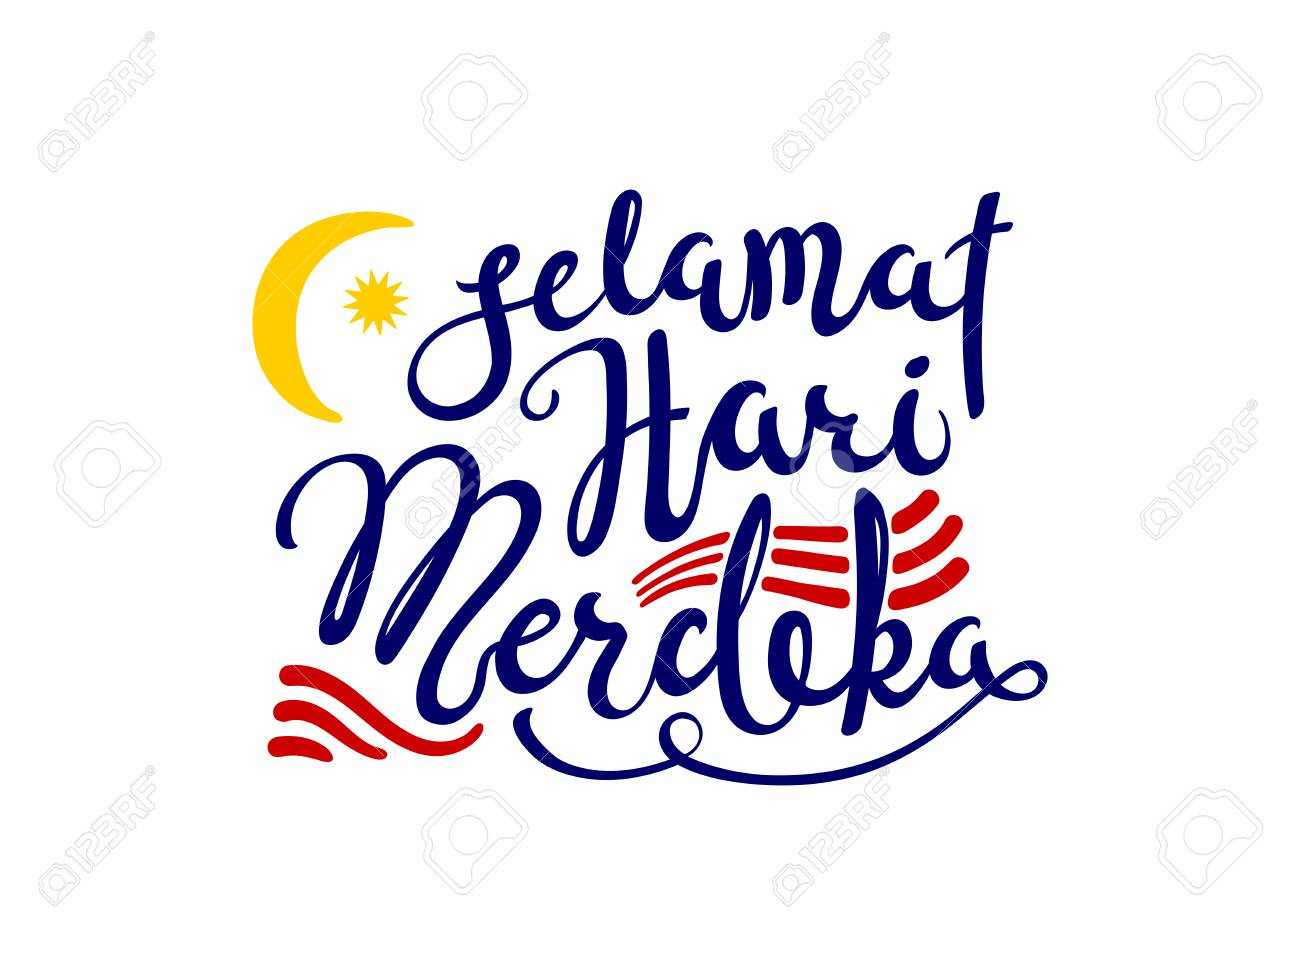 Hand written calligraphic lettering quote Selamat Hari Merdeka, meaning Happy Independence Day in Malay. Isolated objects on white background. Vector illustration. Design concept for banner, card. - 102934176